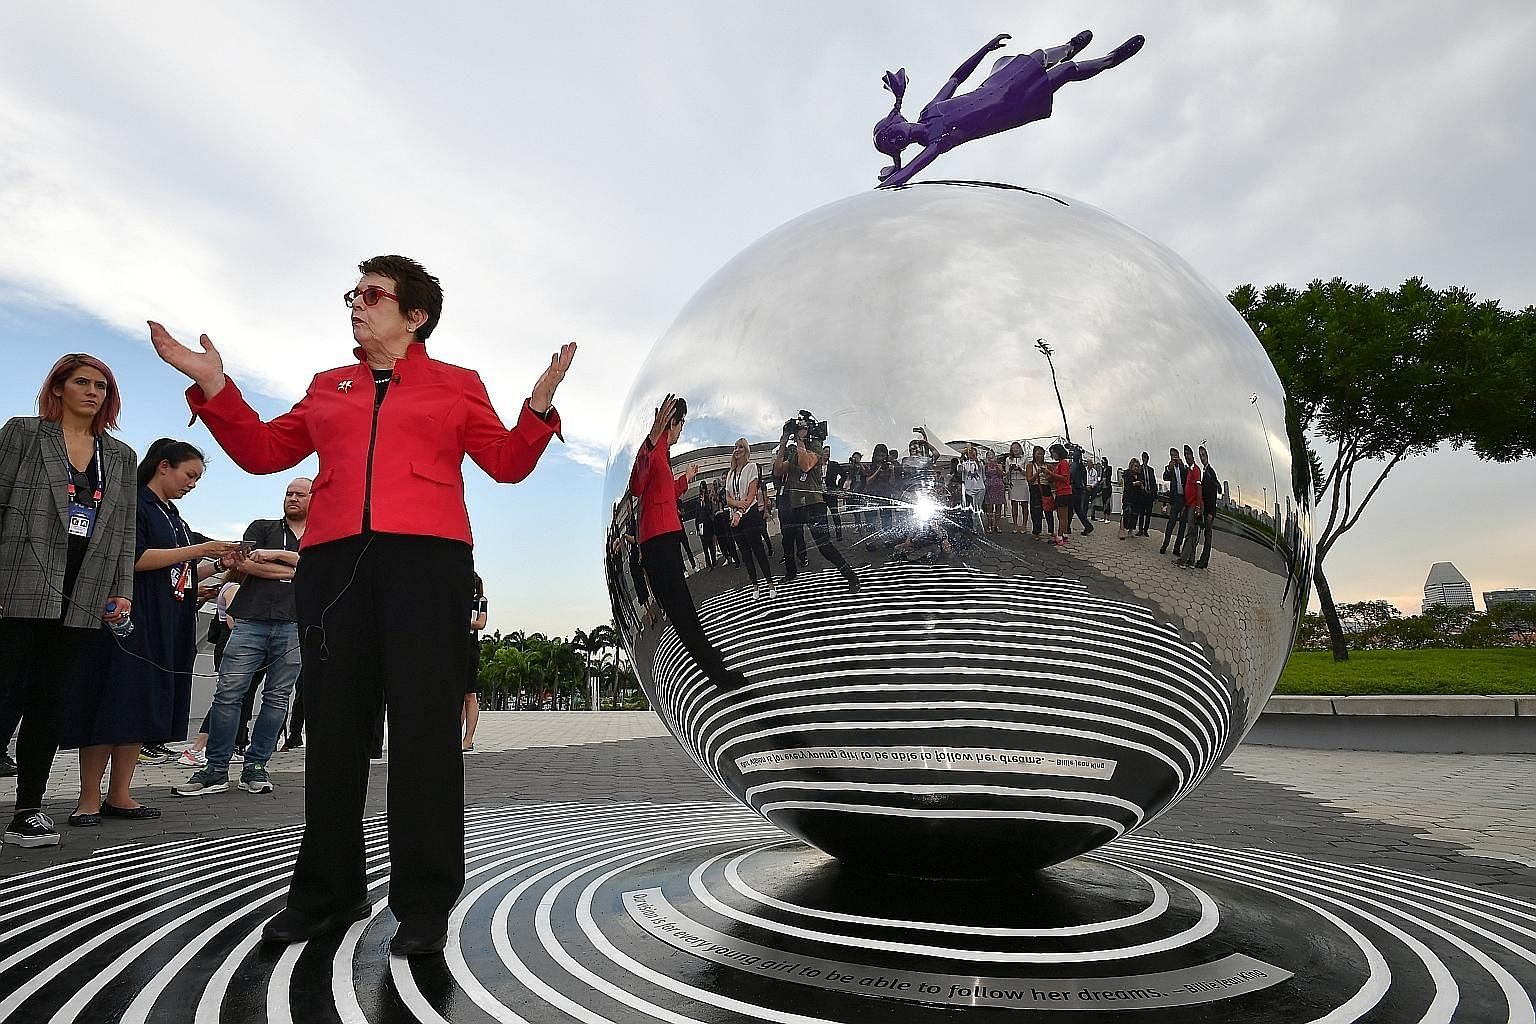 American tennis icon Billie Jean King unveiling a sculpture to commemorate the WTA Finals in Singapore, which is into its fifth and final edition. Titled Dream, it is the first installation of the upcoming sports, arts and heritage trail, which the S